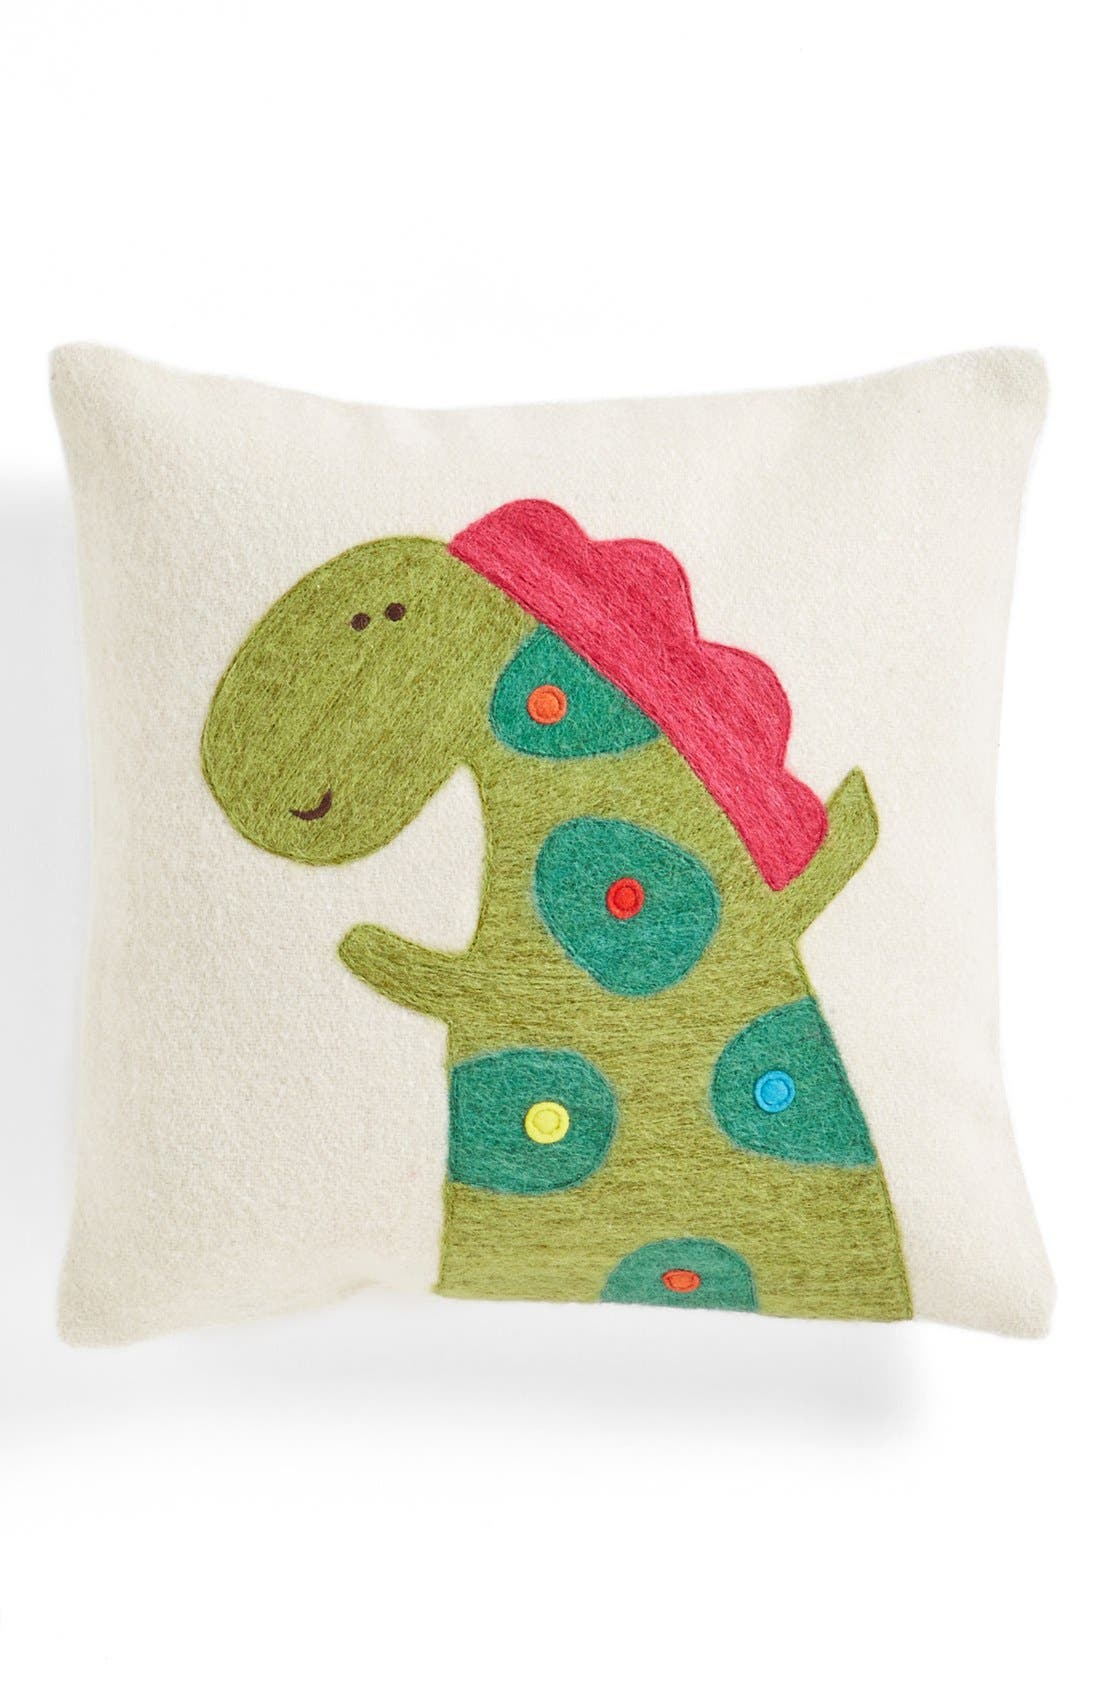 Alternate Image 1 Selected - Amity Home 'Alligator' Decorative Pillow